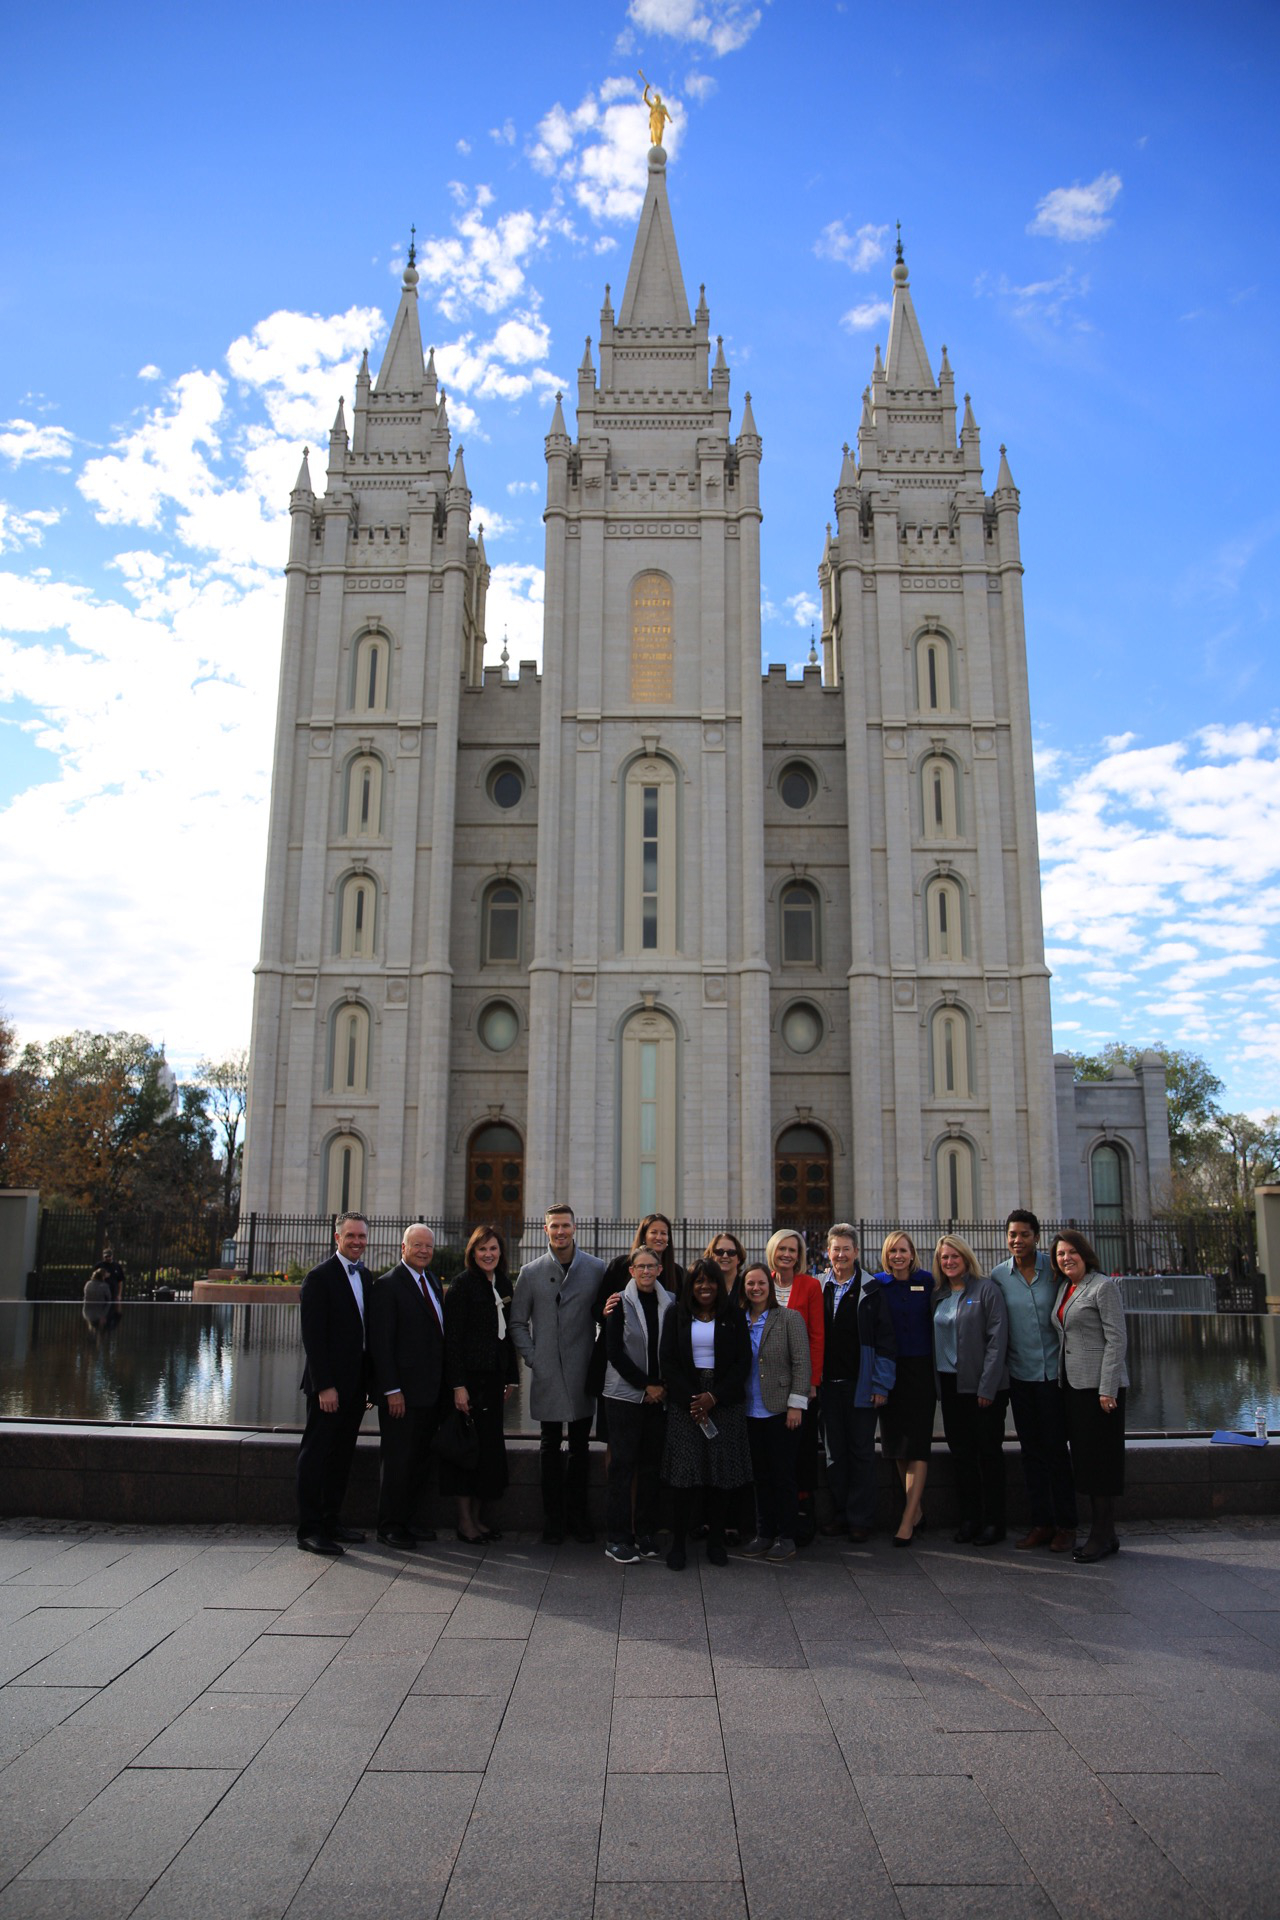 A group photo in front of the Salt Lake Temple with the Common Ground Executive Committee, Nov. 2.